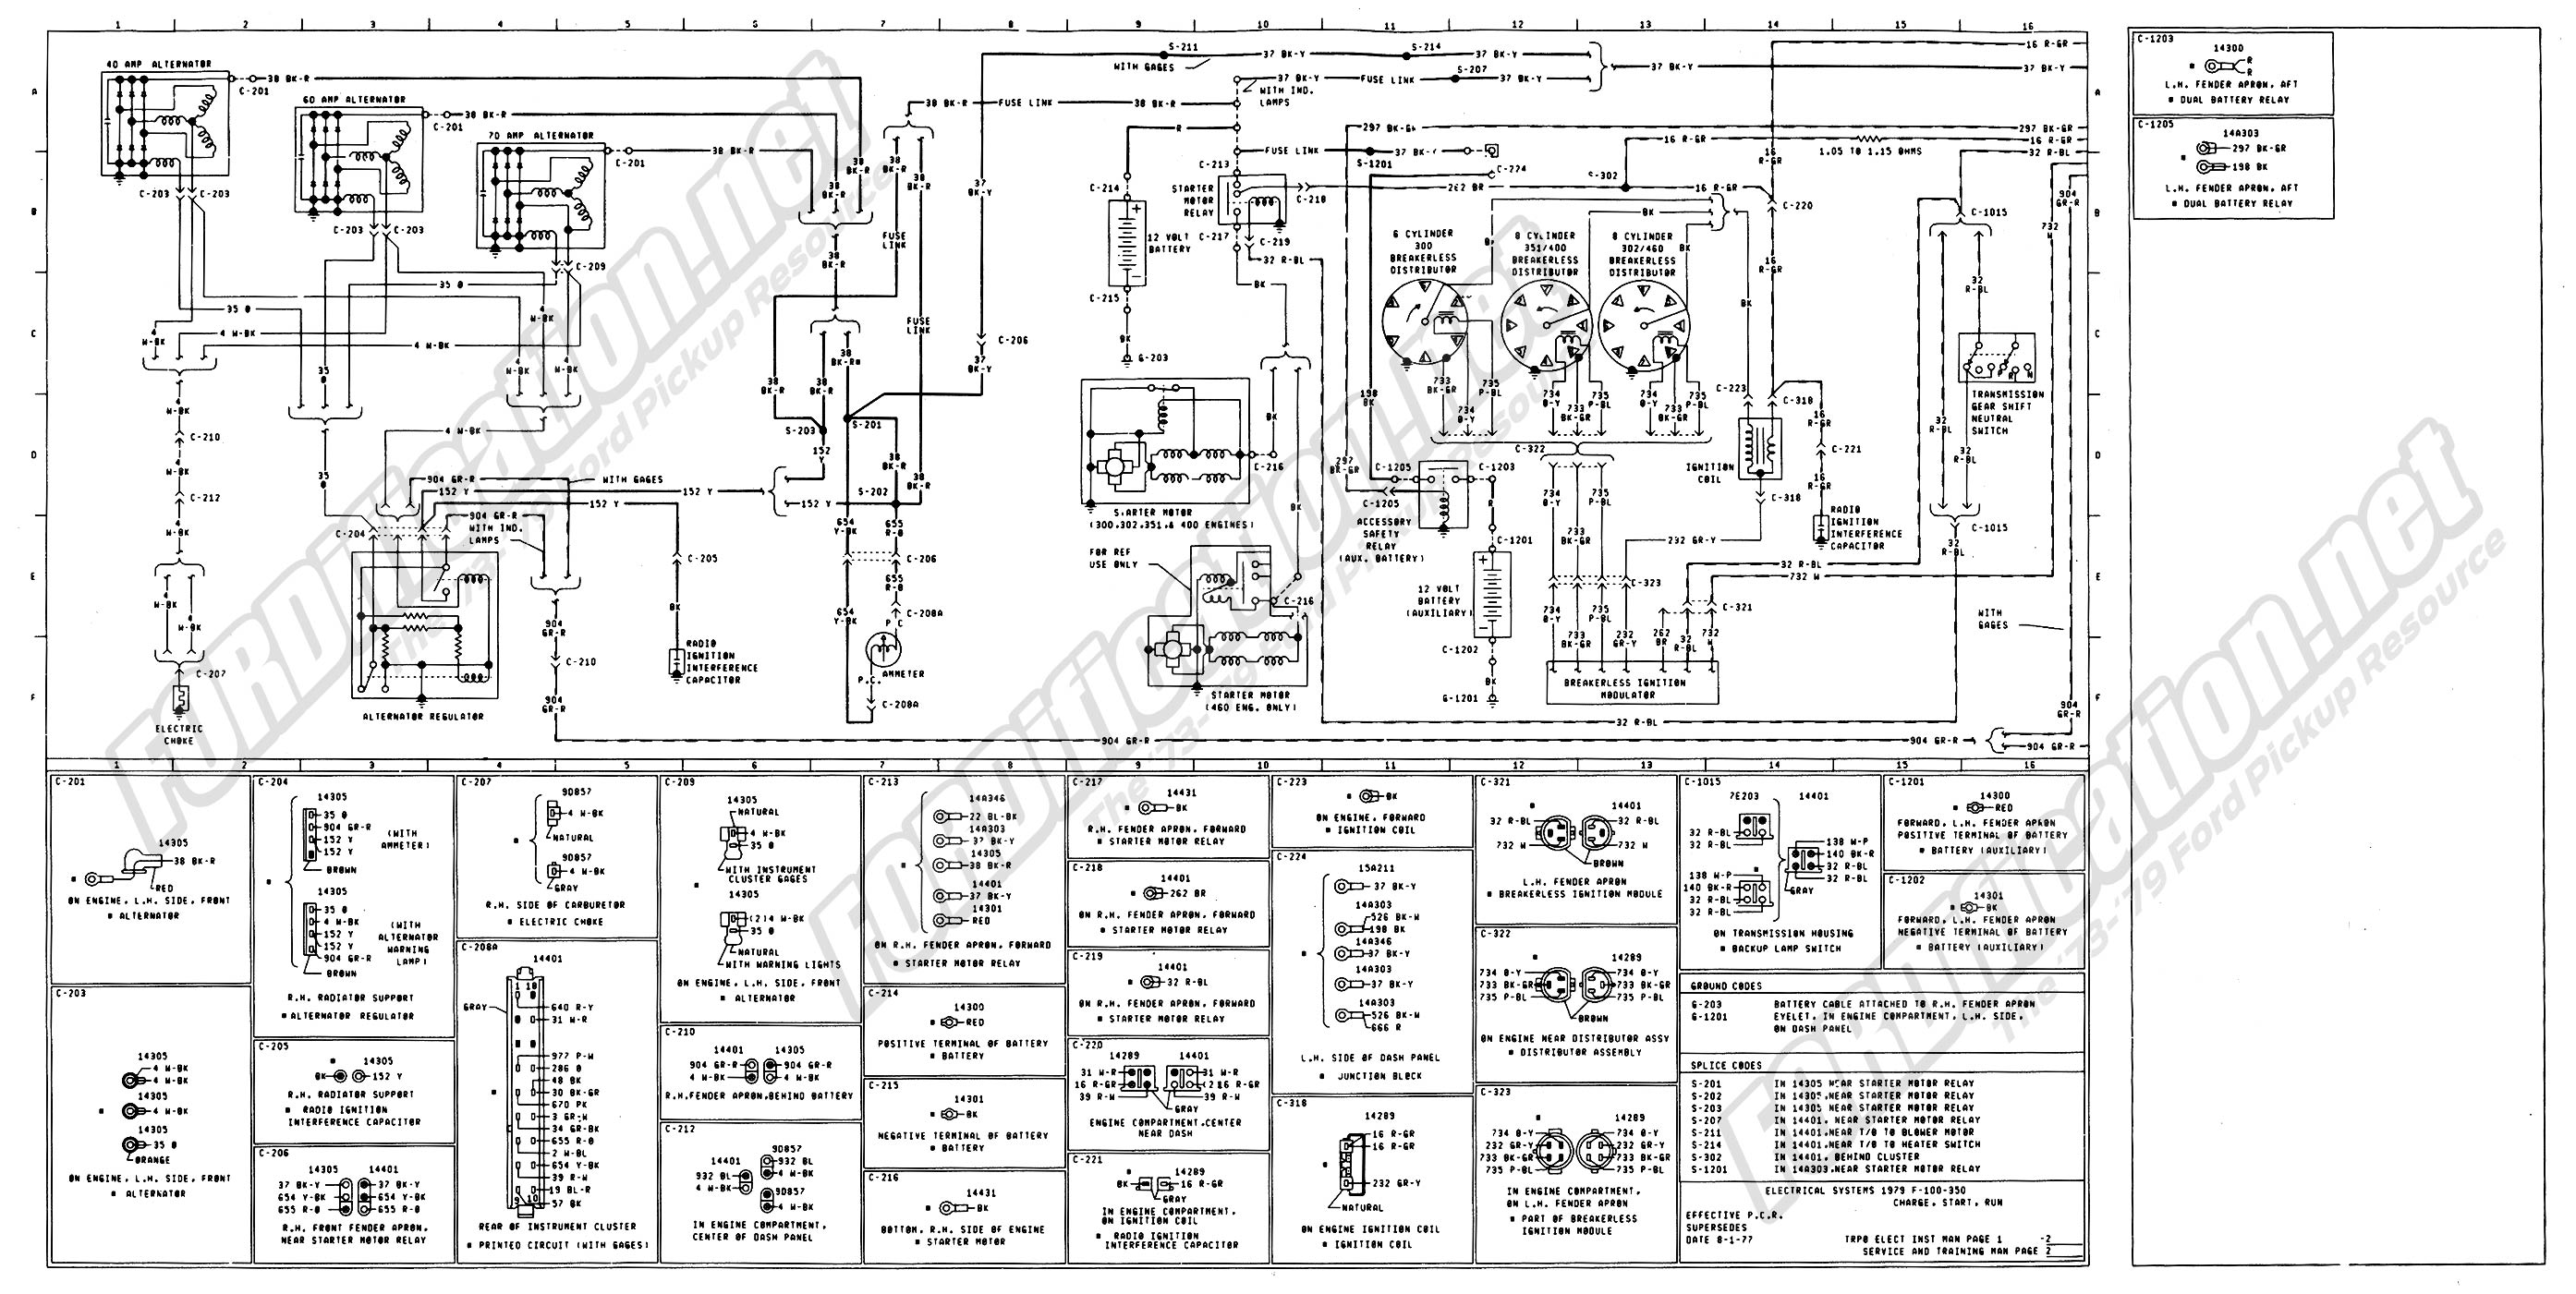 1972 Ford Ignition Switch Wiring Diagram also 1976 Ford F750 Wiring Diagram moreover 1024794 1979 F250 Ignition Switch as well Ford 1978 Firing Order Diagram 302 further 1151693 Proportioning Valve 77 F150 And Weak Brakes 2. on 1979 f 100